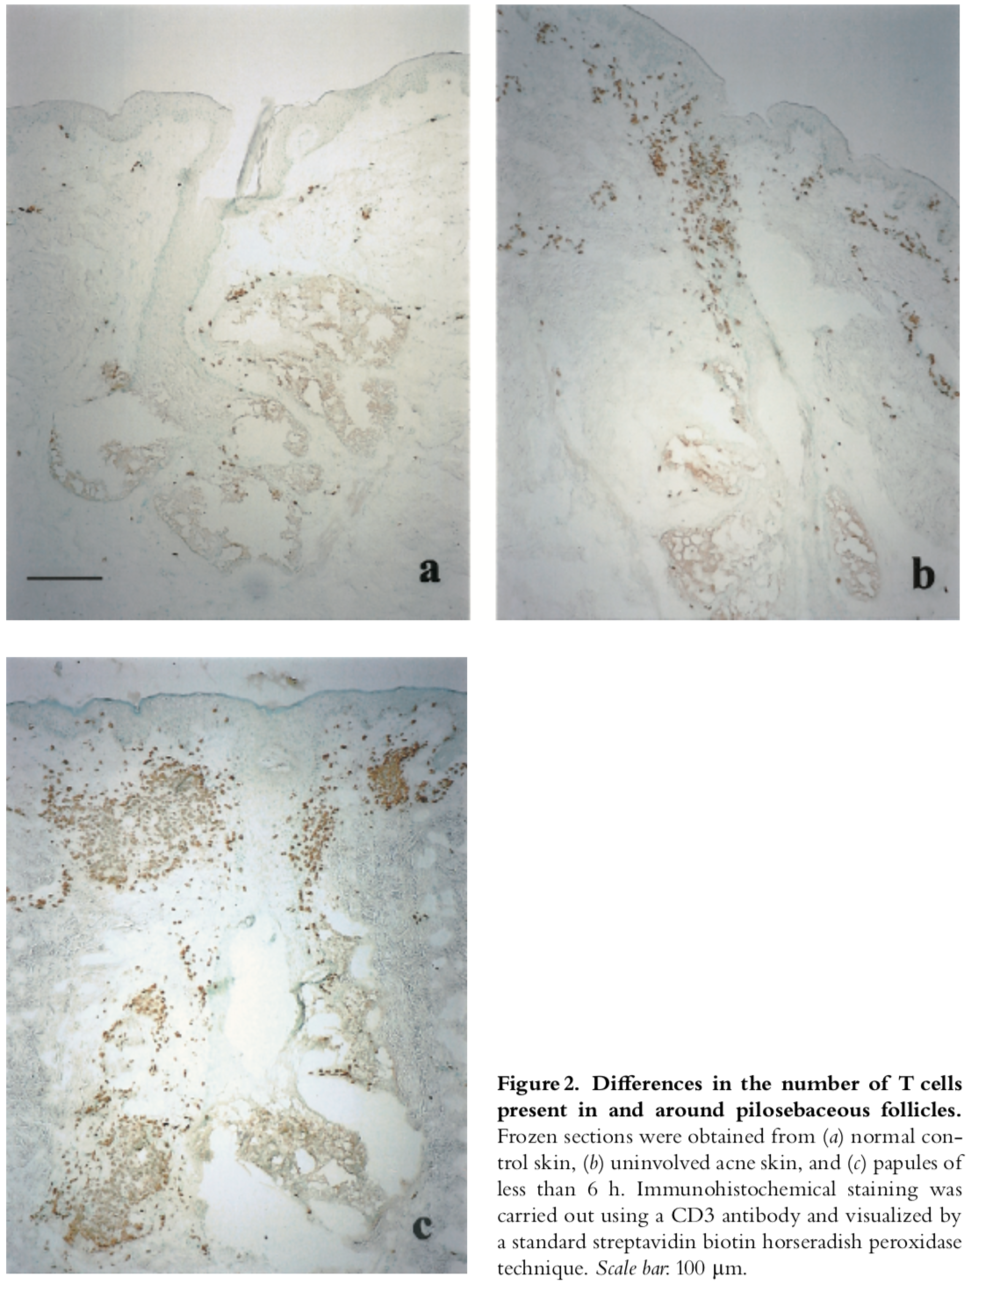 Immune response in the skin of acne patients. Jeremy et al. (2003)